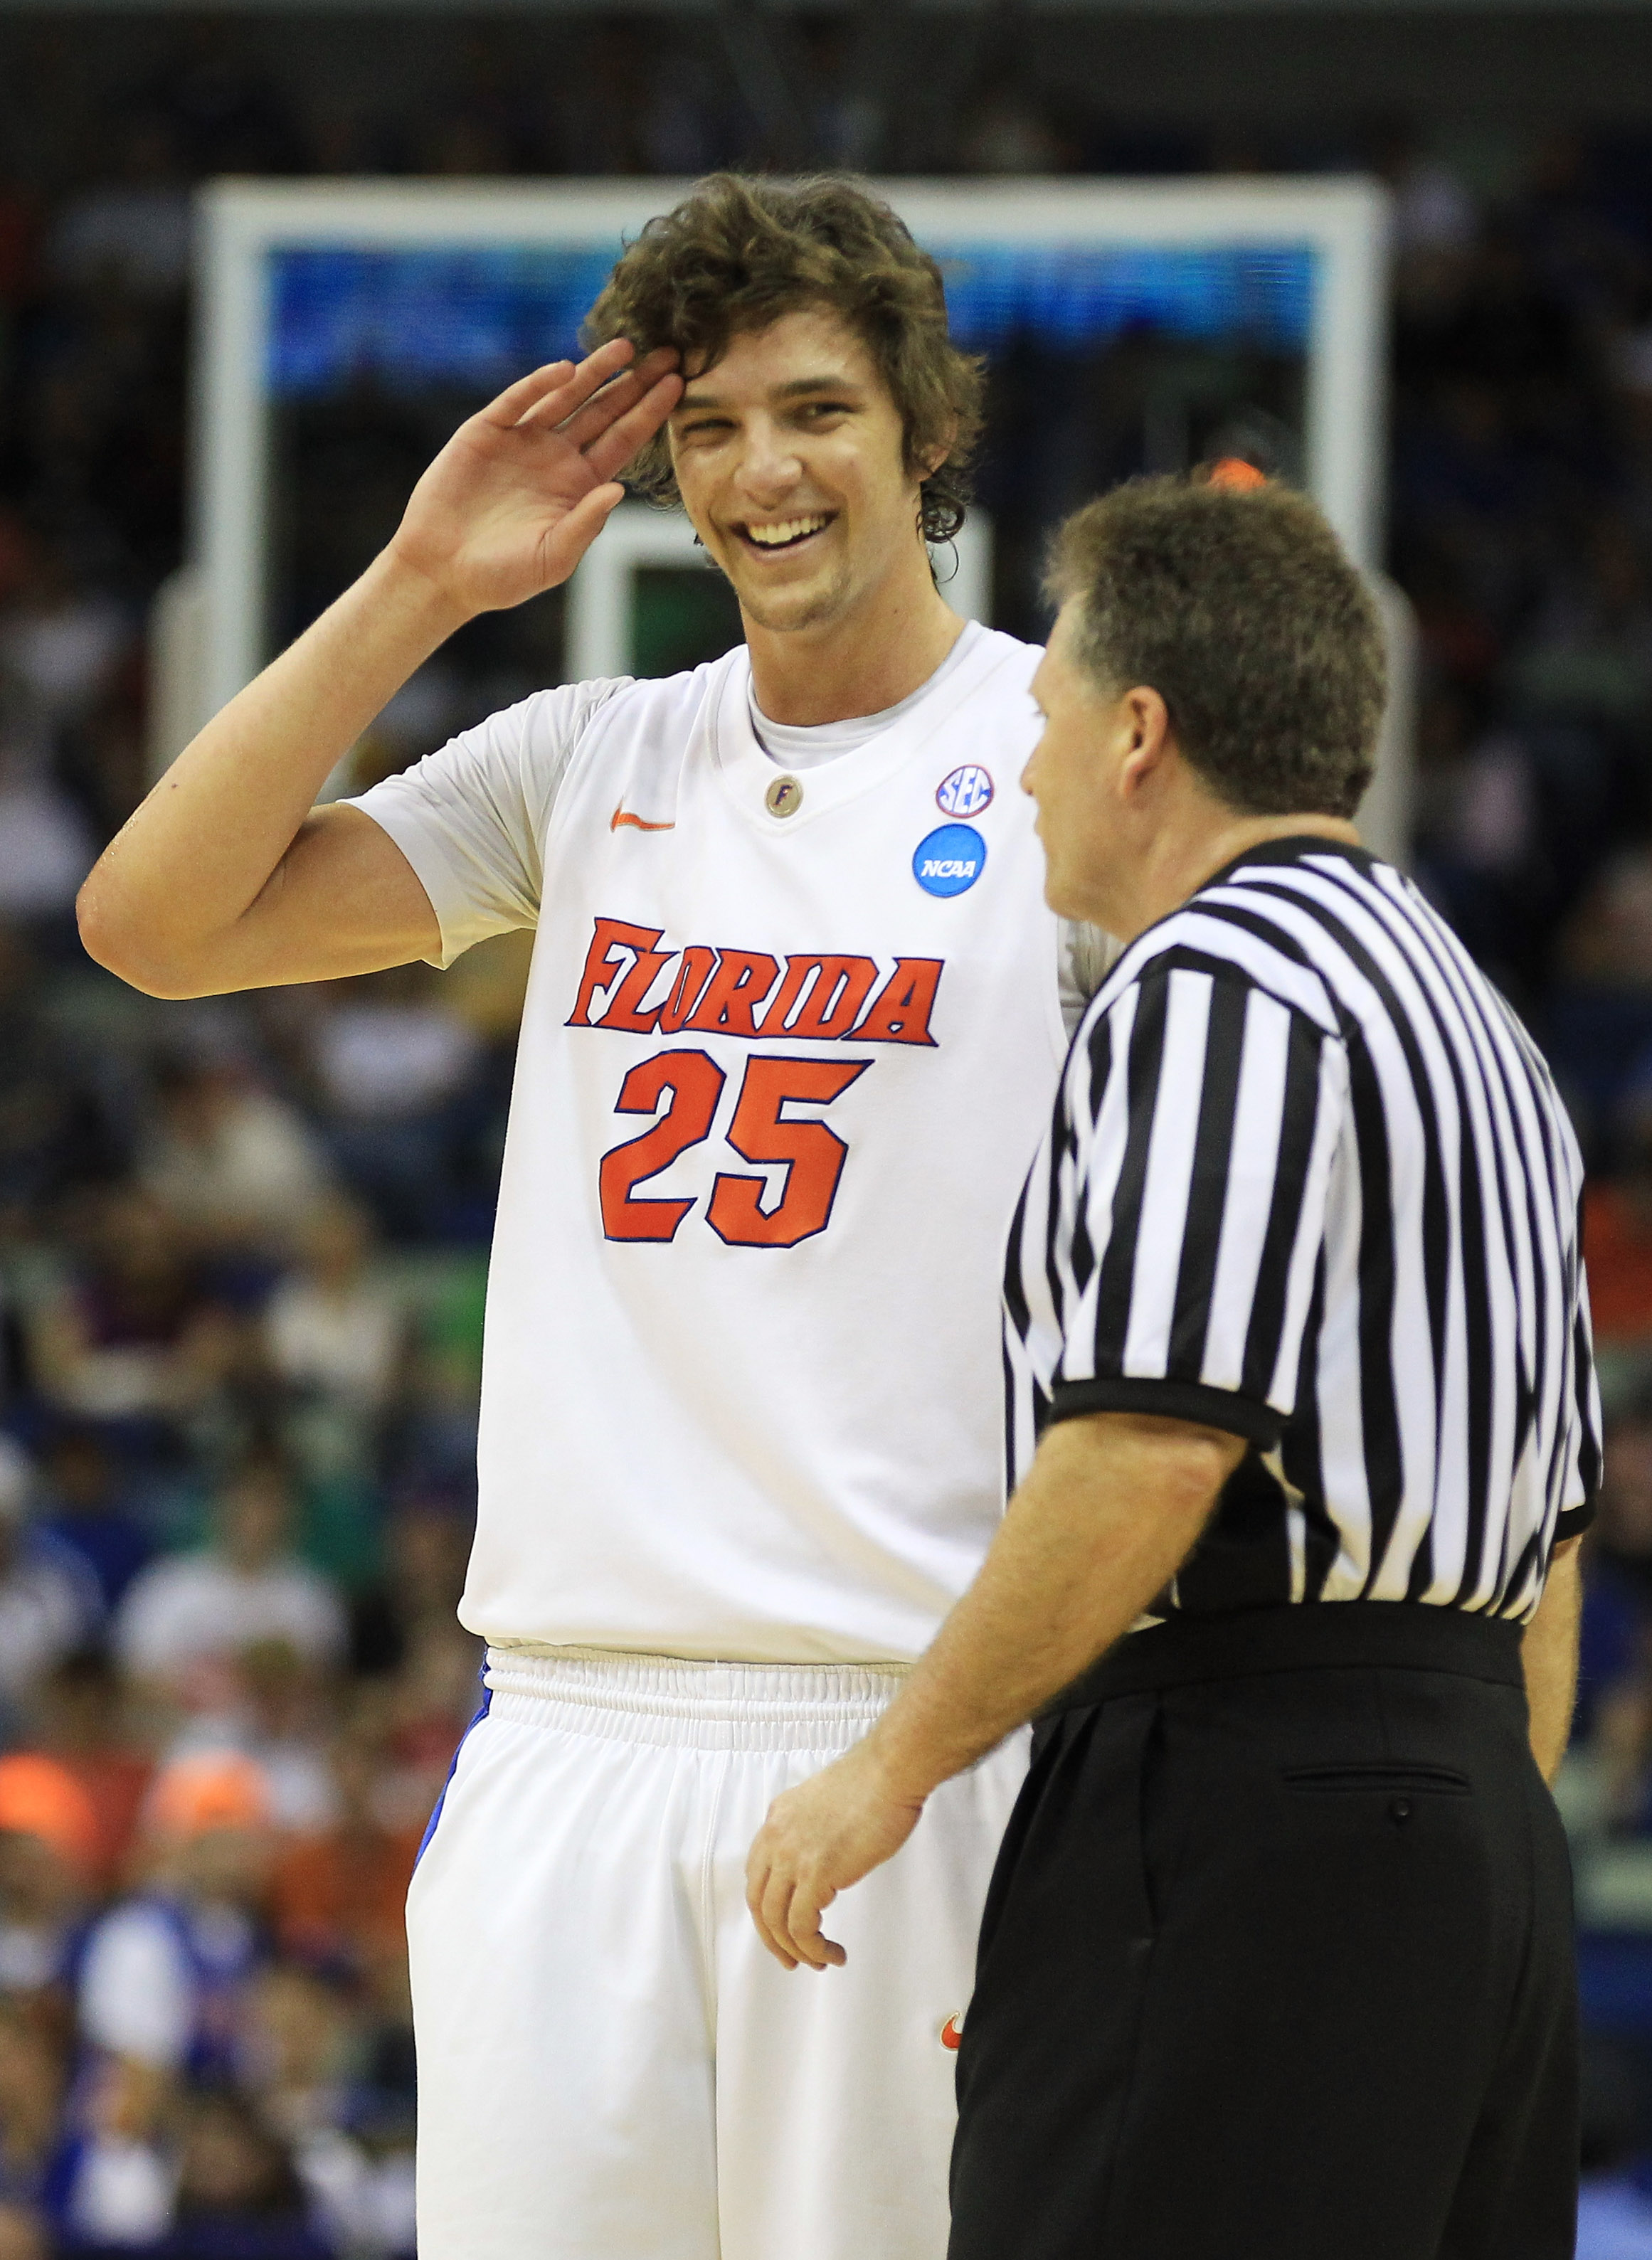 NEW ORLEANS, LA - MARCH 26:  Chandler Parsons #25 of the Florida Gators talks to an offical during their game against the Butler Bulldogs in the Southeast regional final of the 2011 NCAA men's basketball tournament at New Orleans Arena on March 26, 2011 i